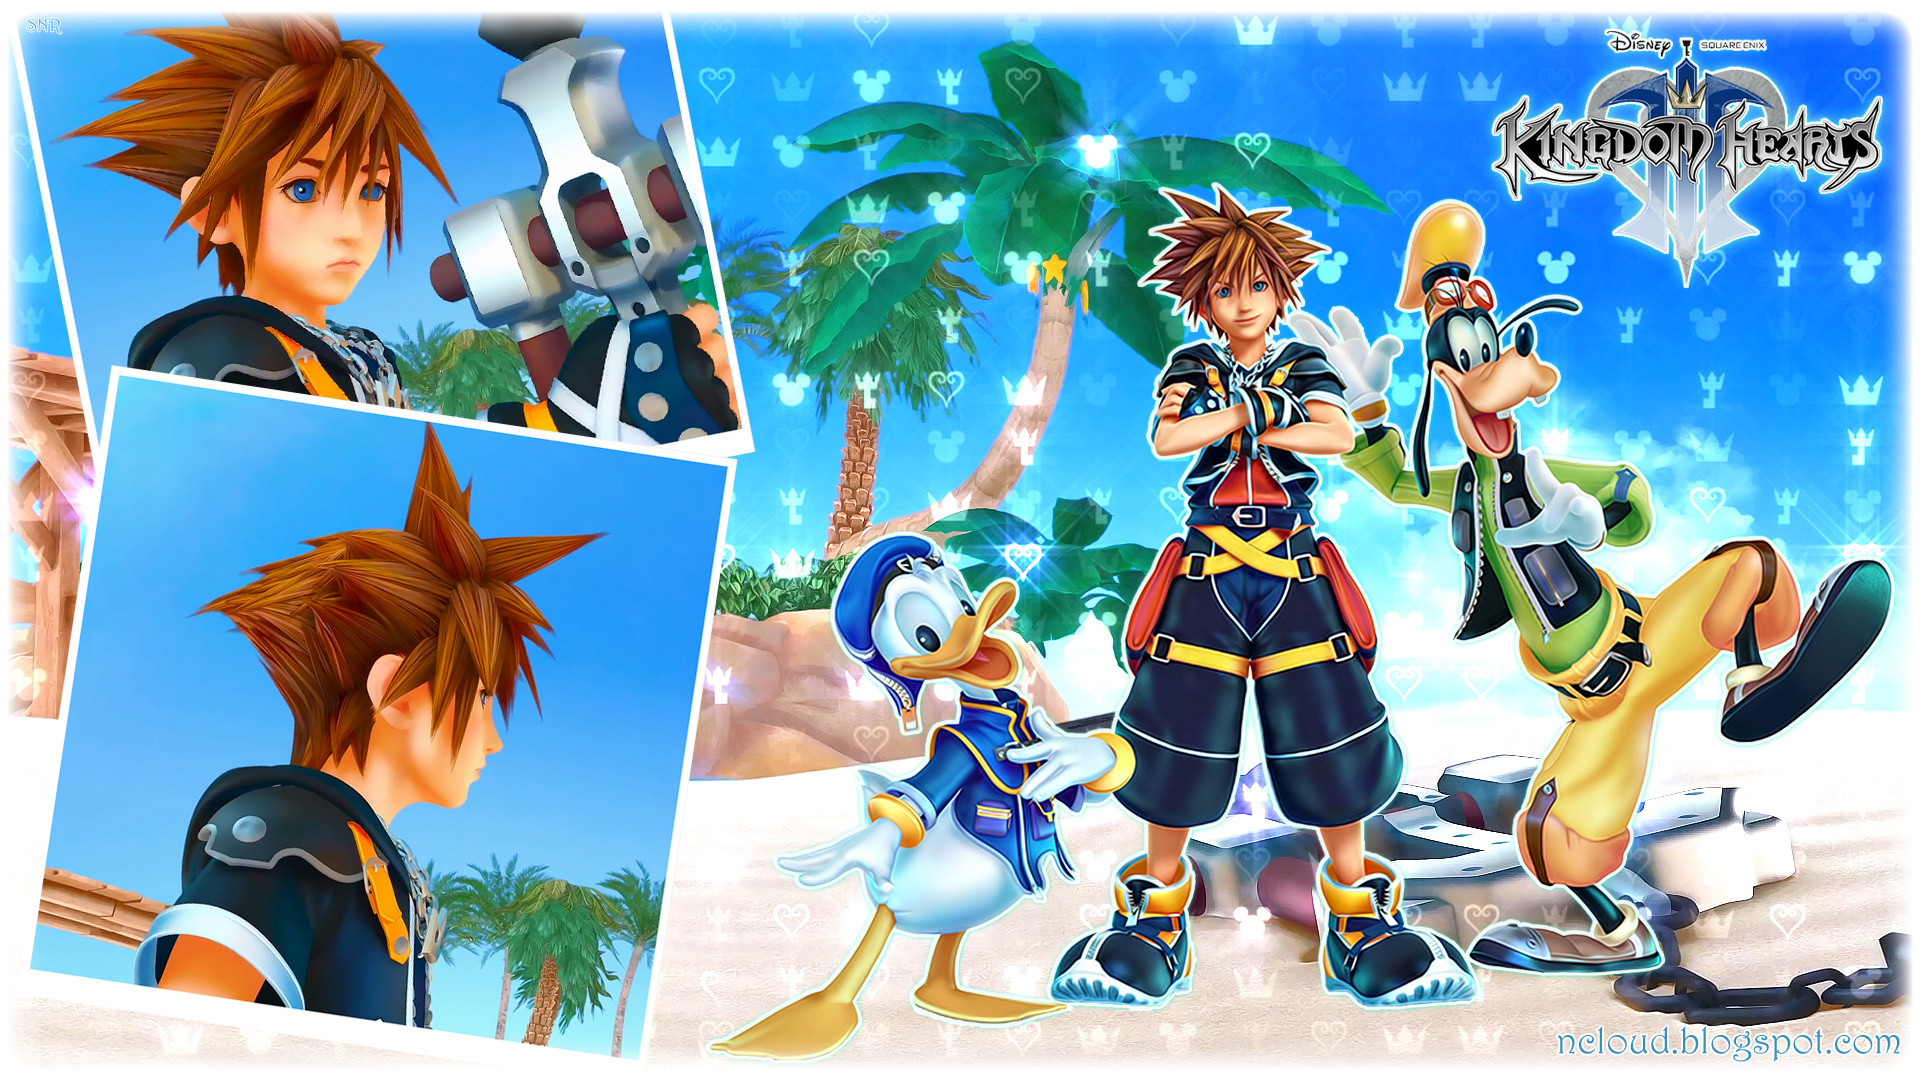 Kingdom Hearts 3 Images Crazy Gallery 1920x1080